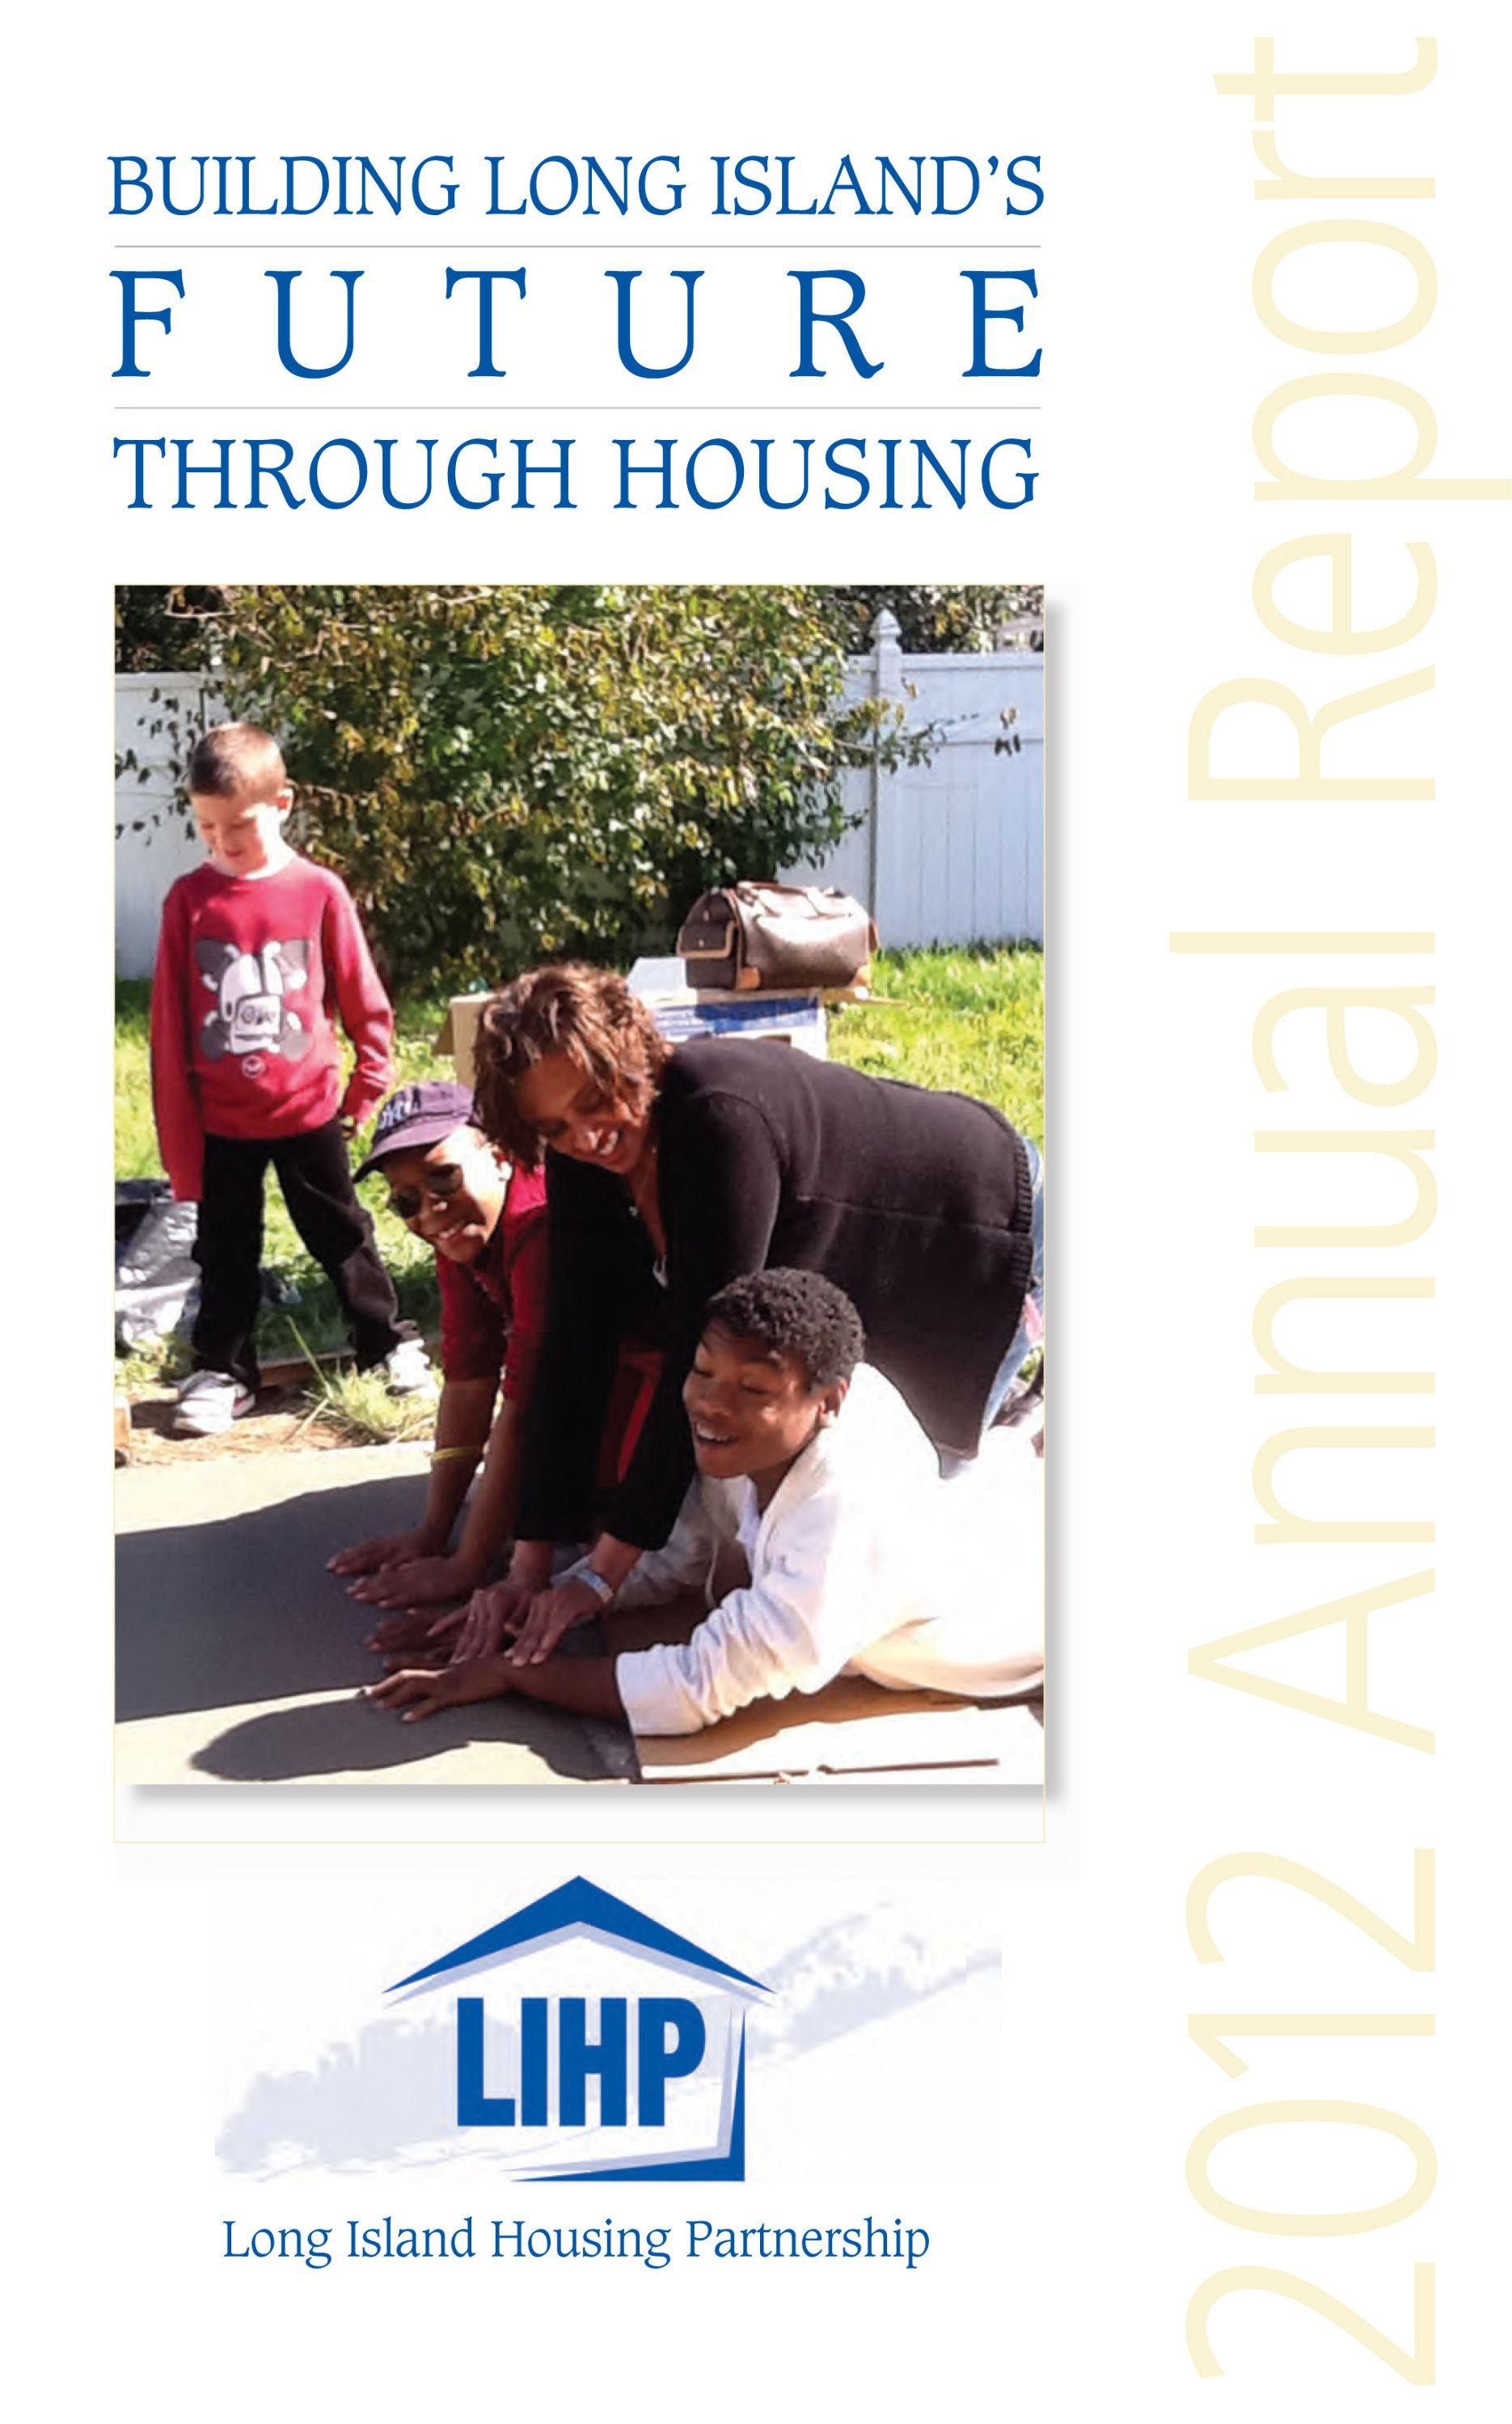 Long Island Housing Partnership 2012 Annual Report